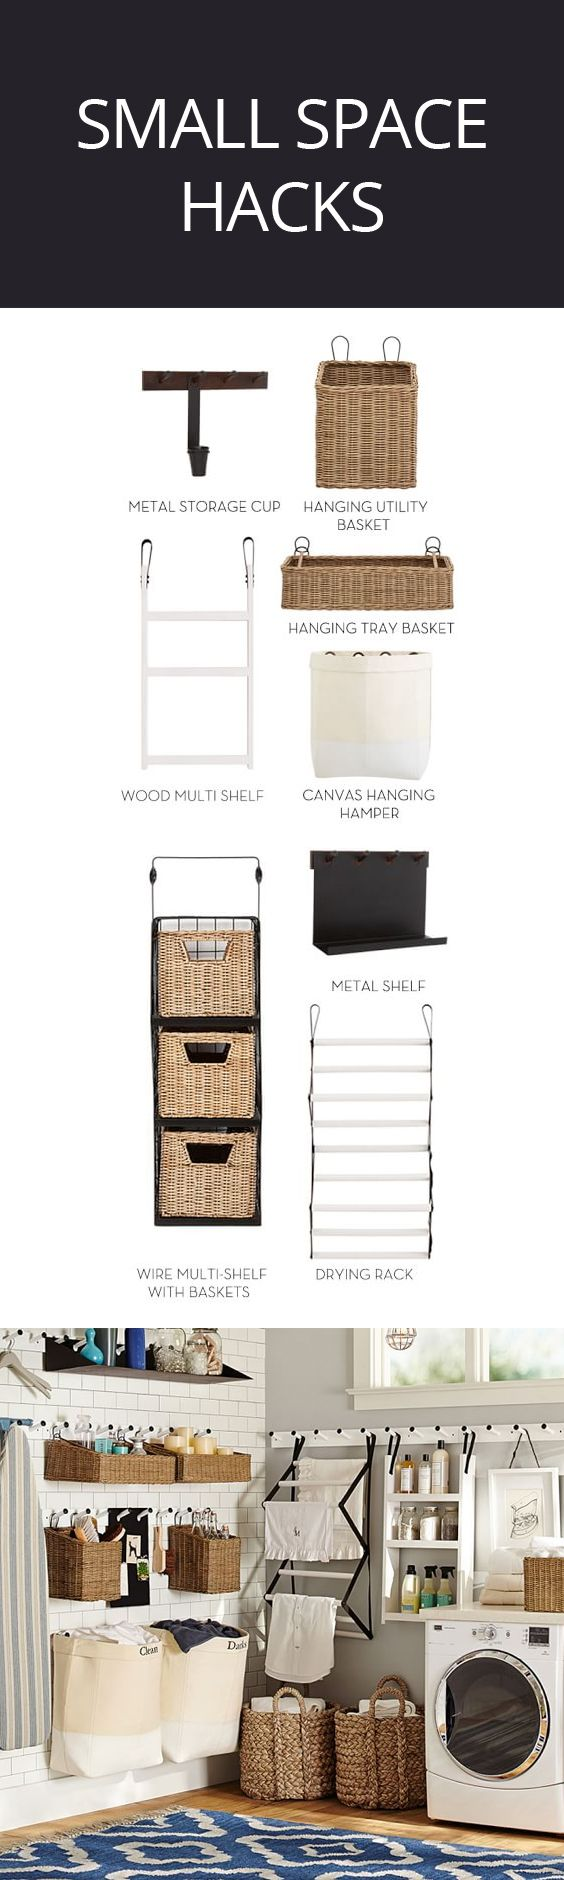 Keeping everything straight just got easier with this modular organizing system! Maximize efficiency in all the busy areas of the home – pantry, entry, office, garage, laundry and more. Easily configured to meet your specific needs. #minimalist #spacesaver #spacesaving #ad #organization